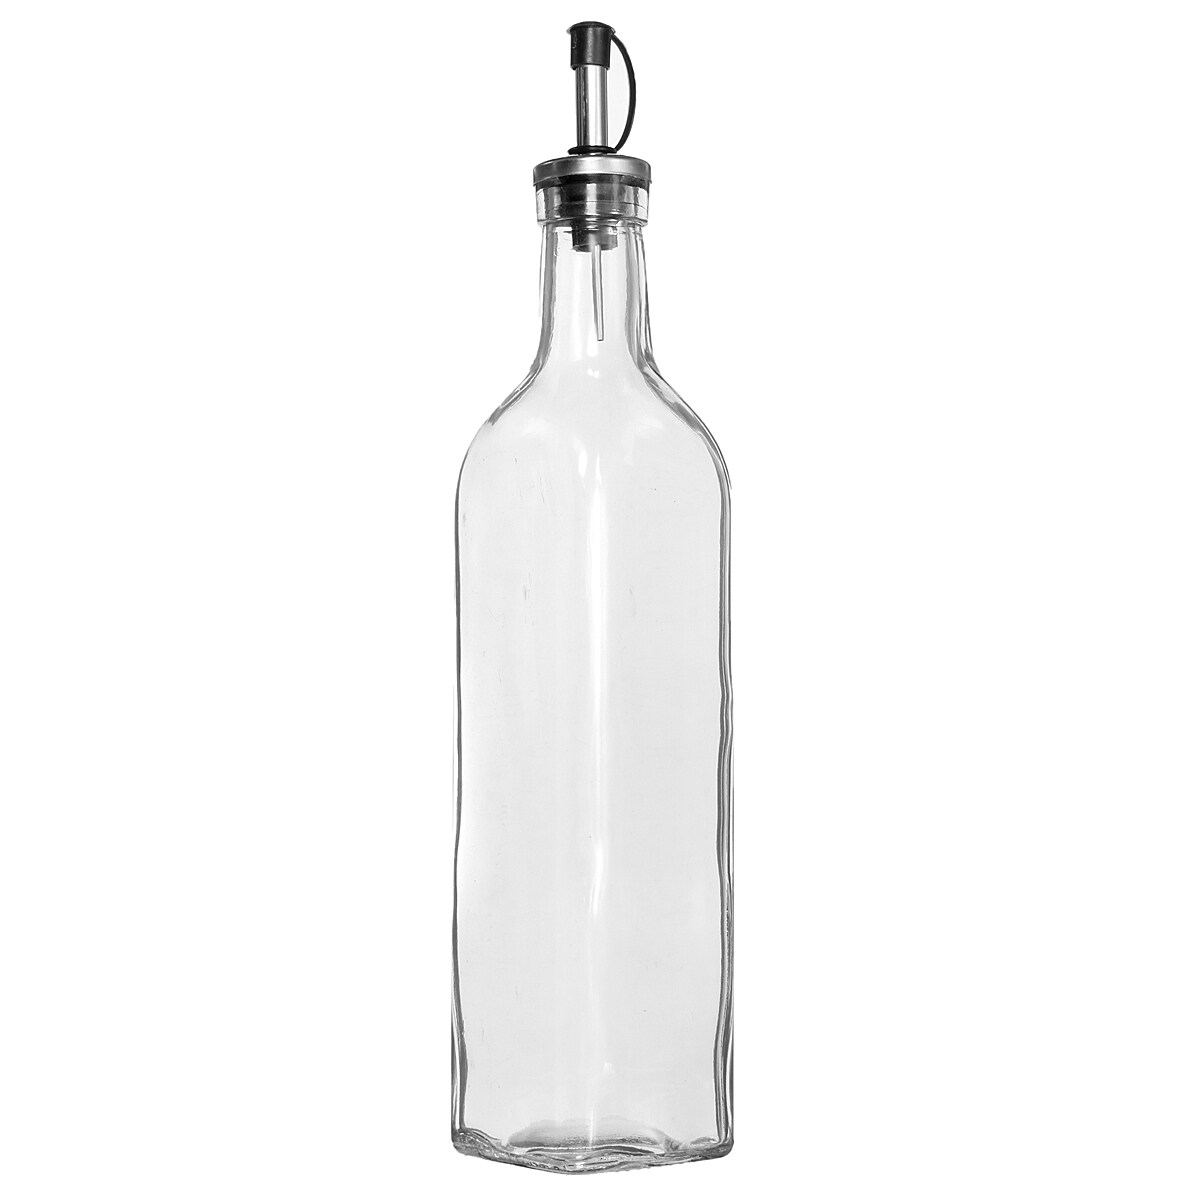 oz ml glass olive oil dispenser vinegar bottle pourer spout  -  oz ml glass olive oil dispenser vinegar bottle pourer spout cruetkitchen  lazada malaysia